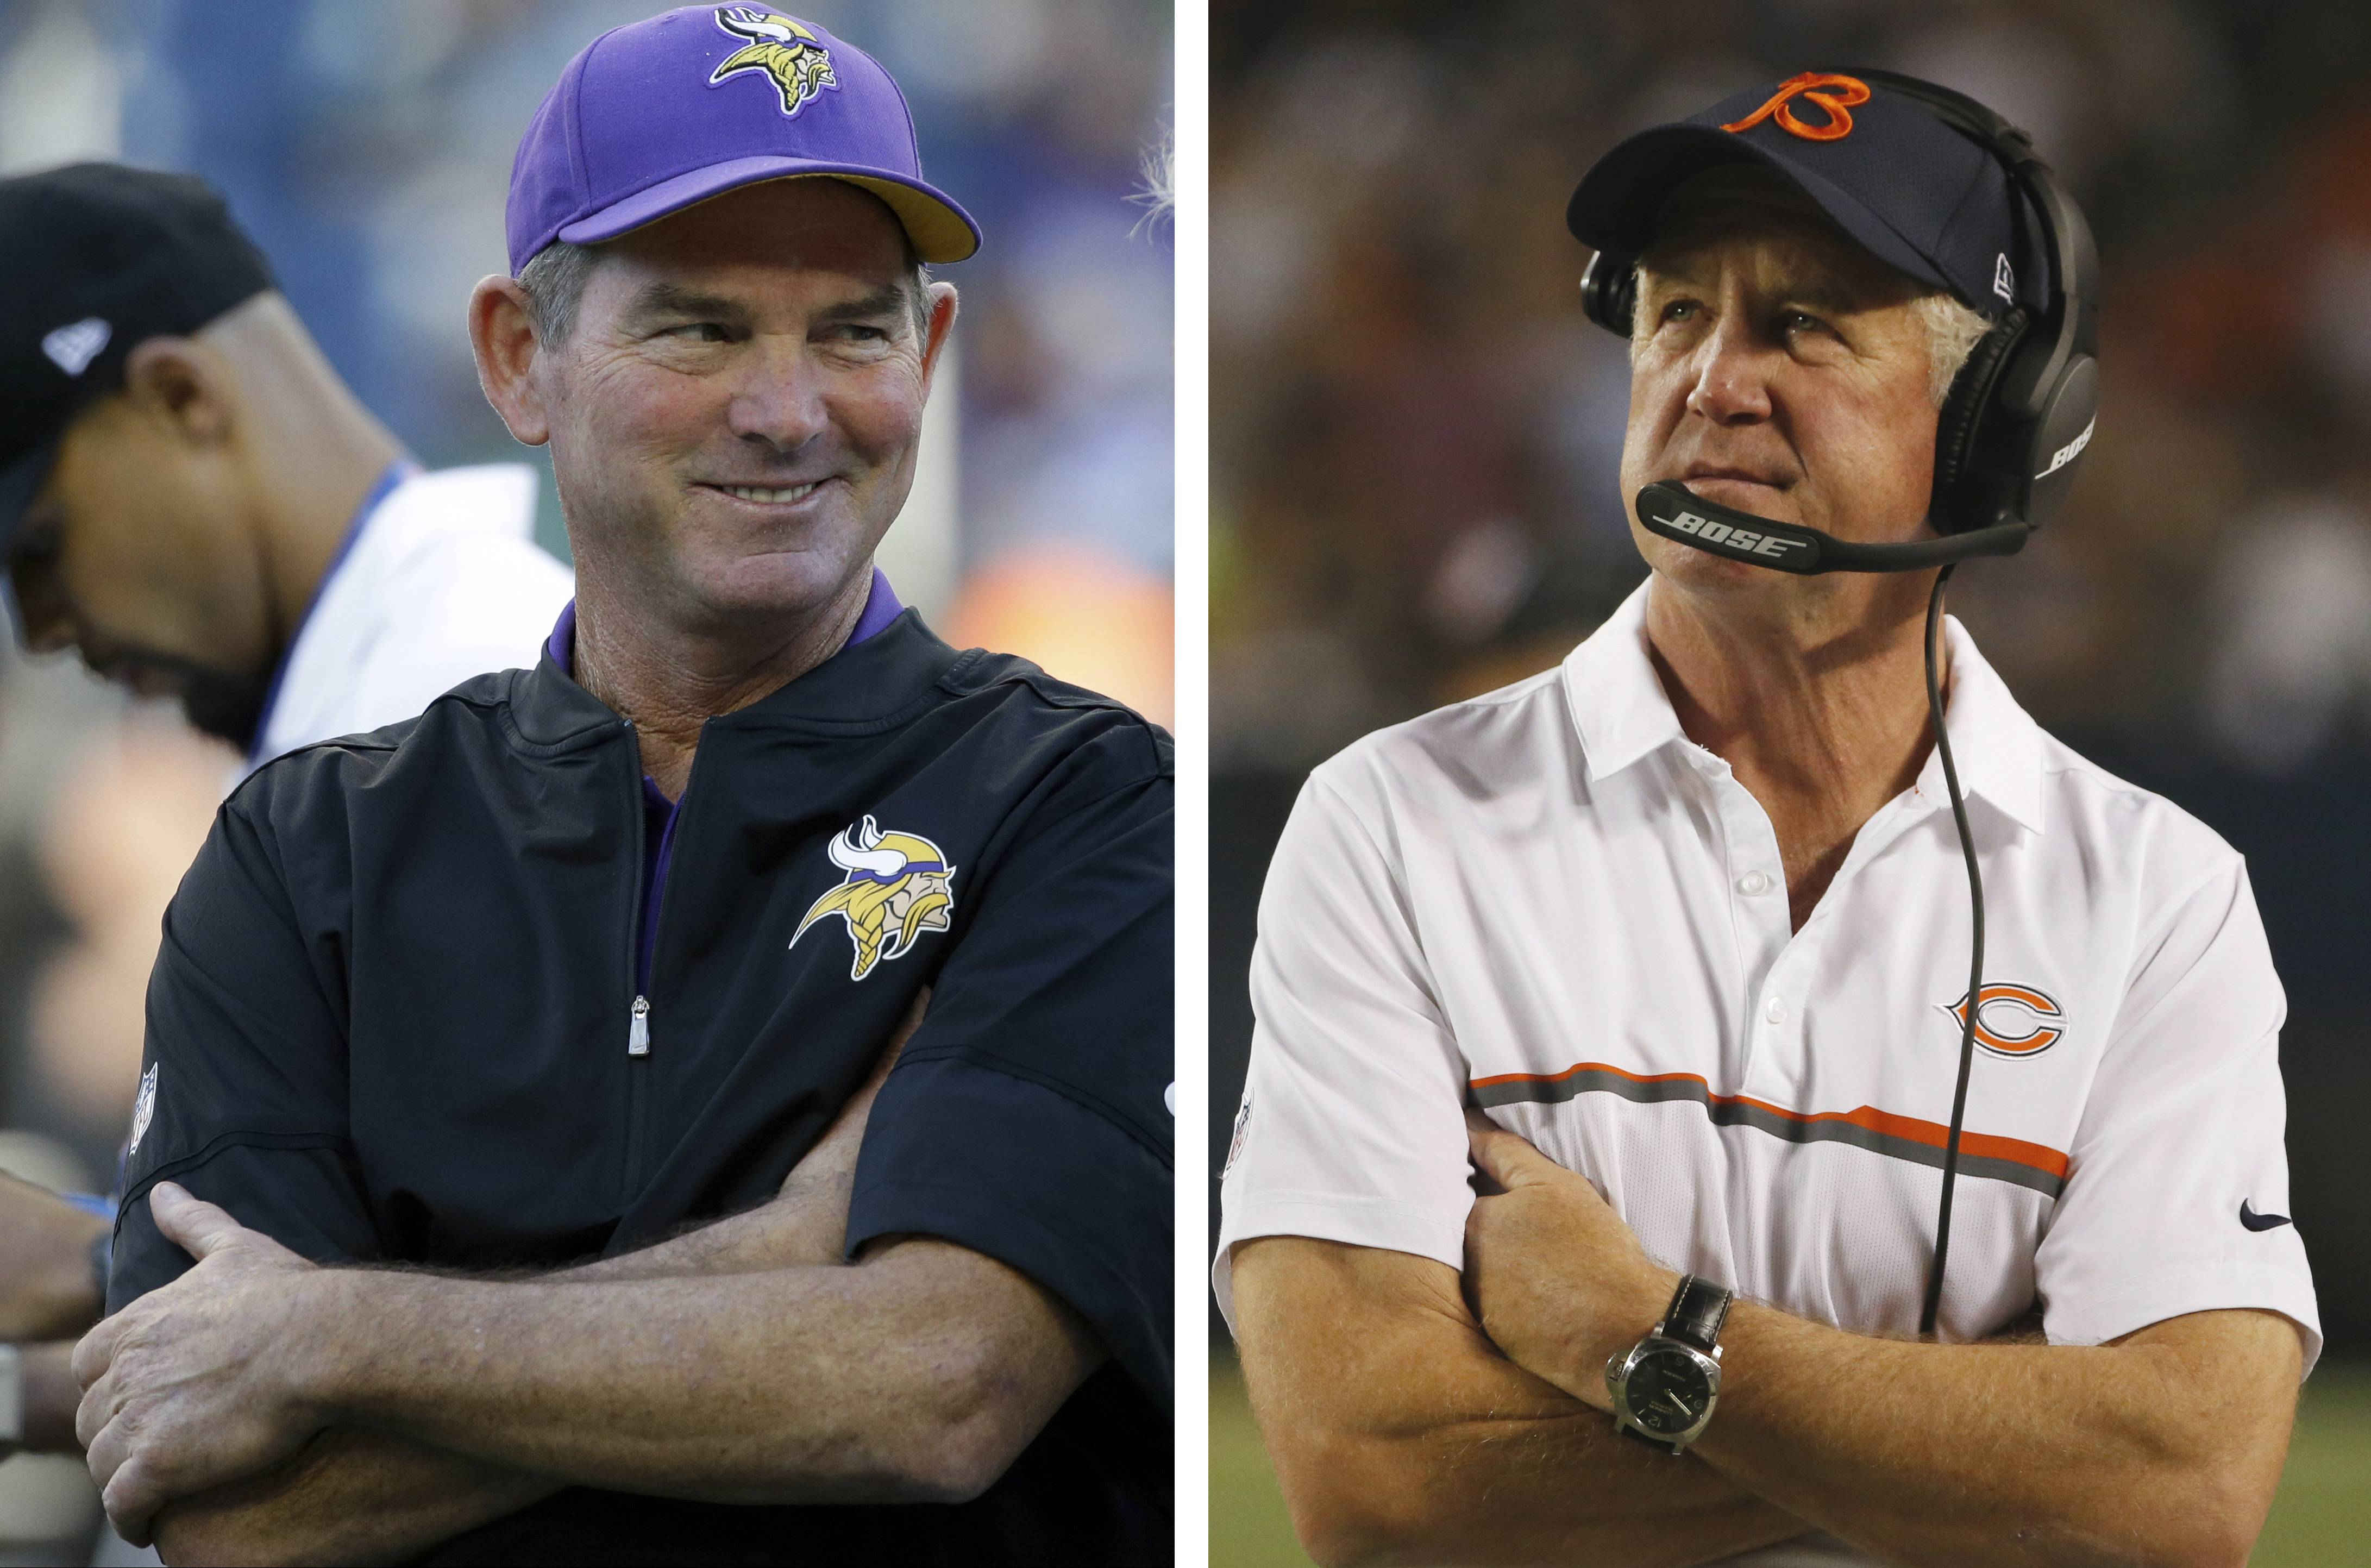 The Chicago Bears are preparing to take on the 5-1 Minnesota Vikings Monday night. Though the Vikings had 4 turnovers in last week's loss against the Eagles — their first loss of the season — the Bears aren't expecting an easy ride.